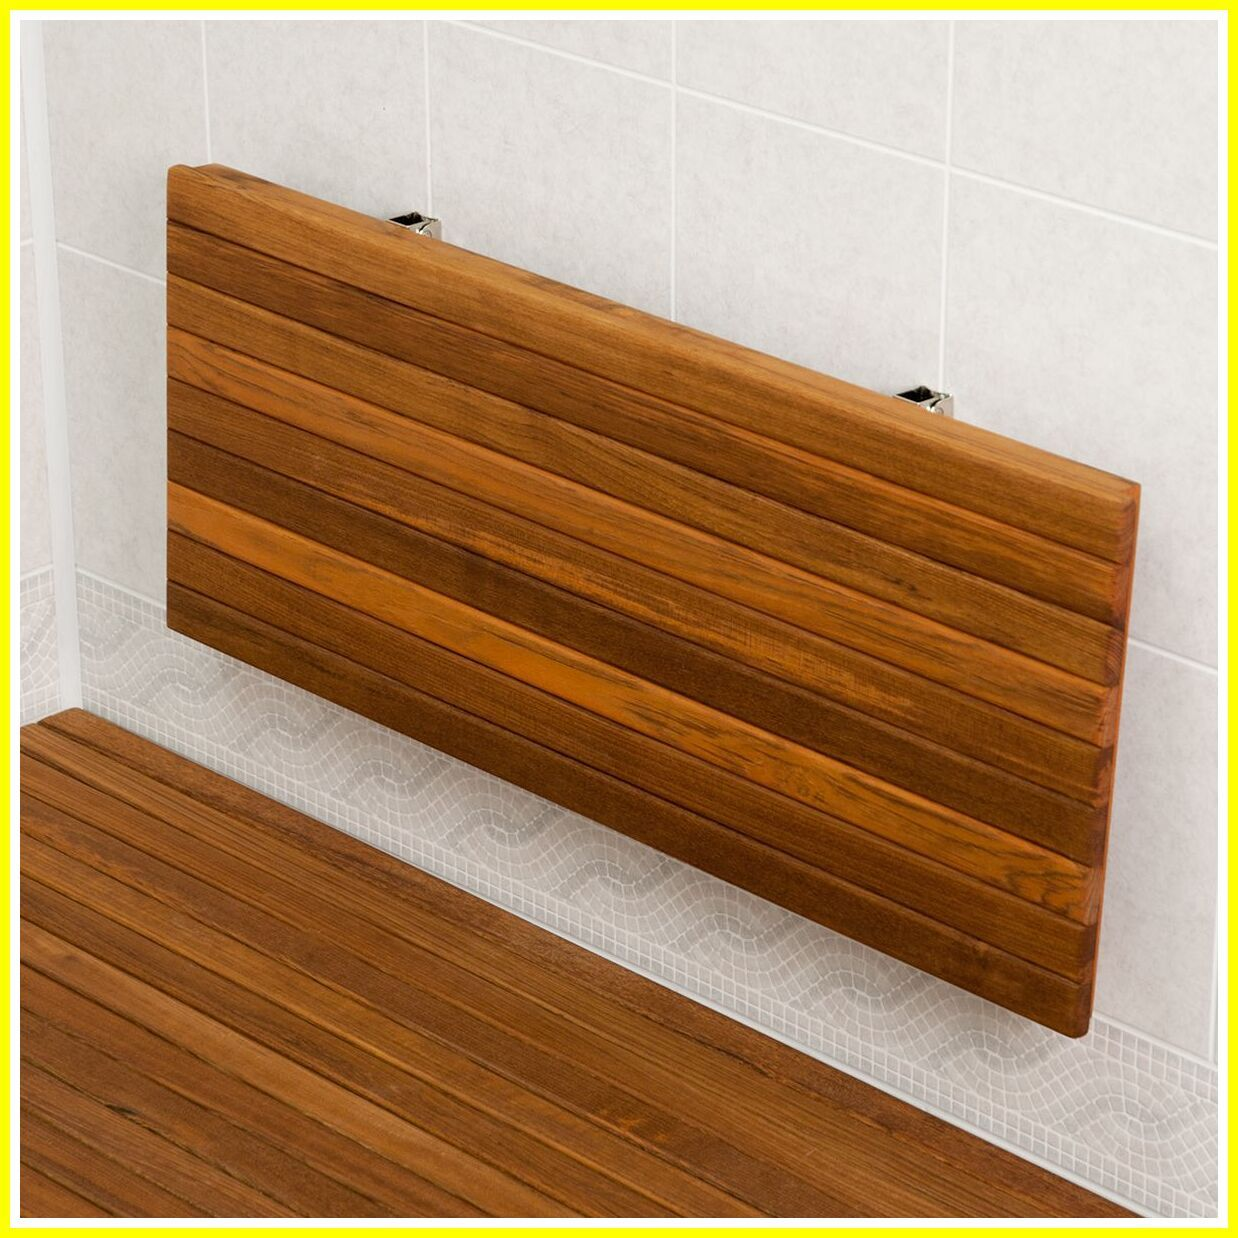 77 Reference Of Folding Bench Wall Brackets In 2020 Teak Shower Bench Teak Shower Teak Shower Seat